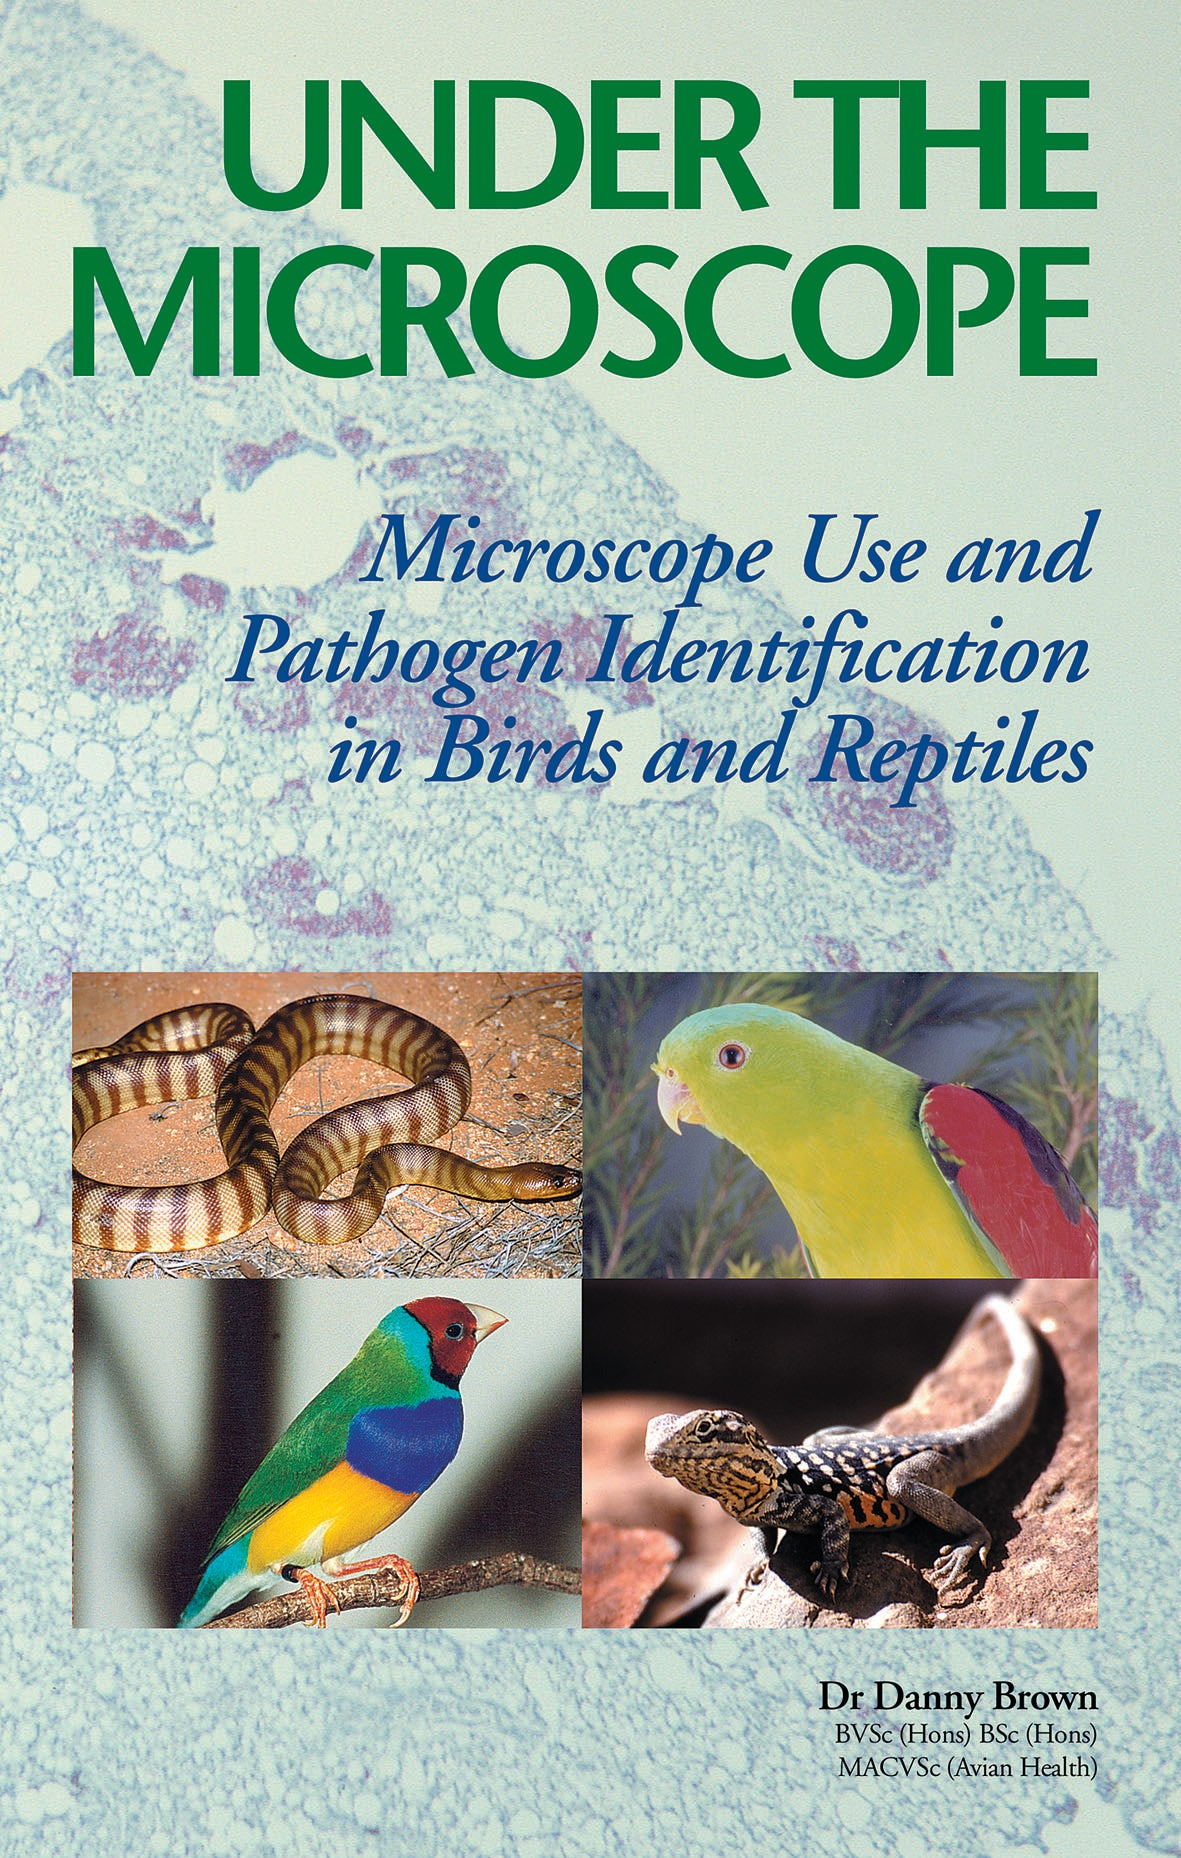 Under the Microscope—Microscope Use and Pathogen Identification